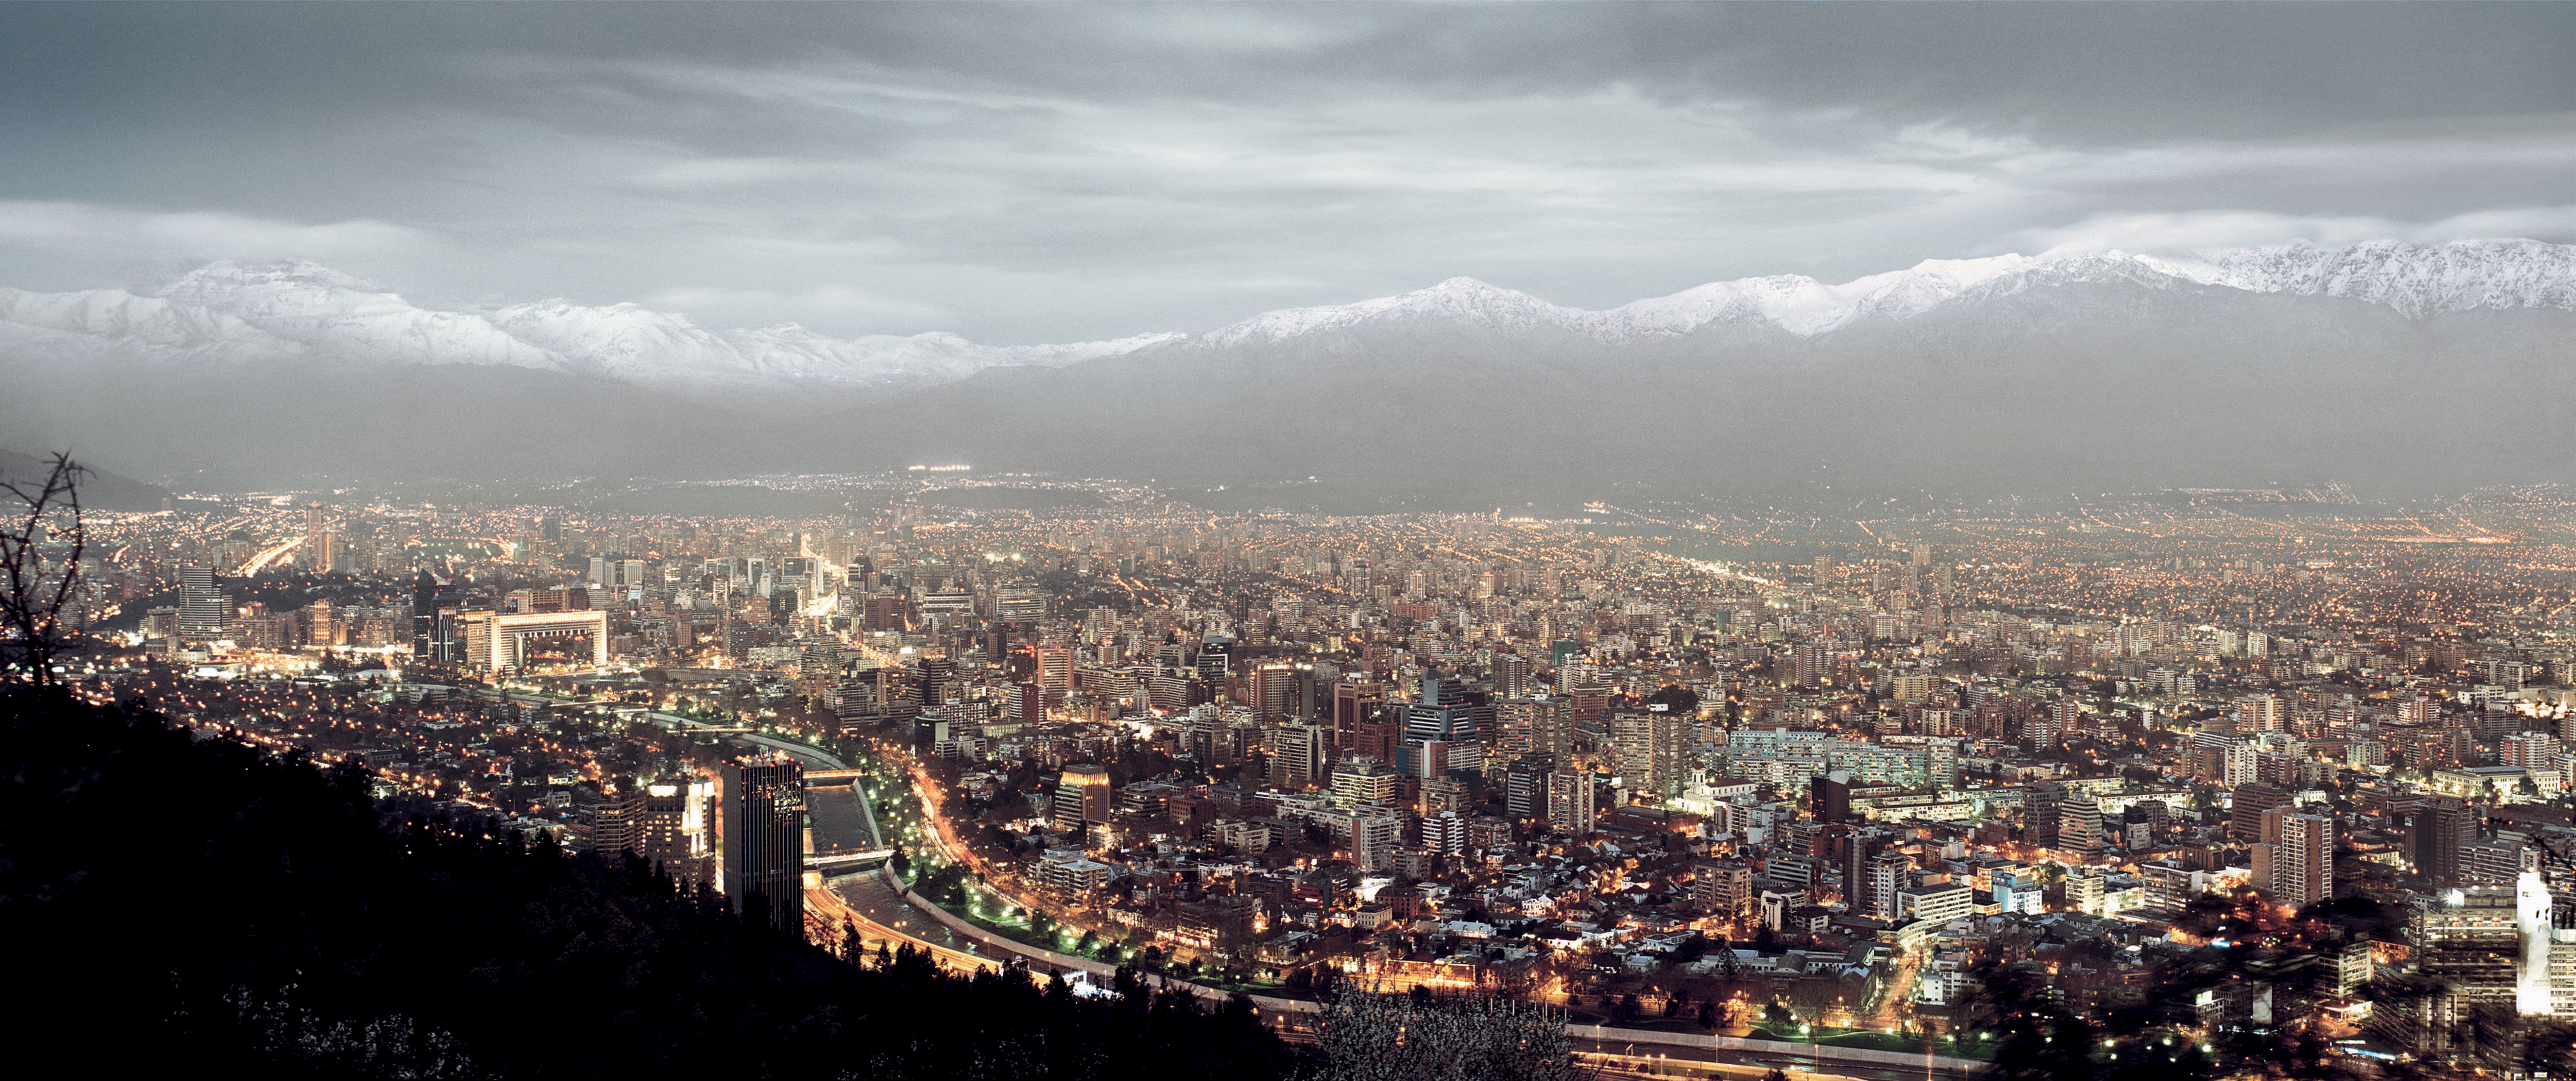 Santiago chile high World HD Wallpaper